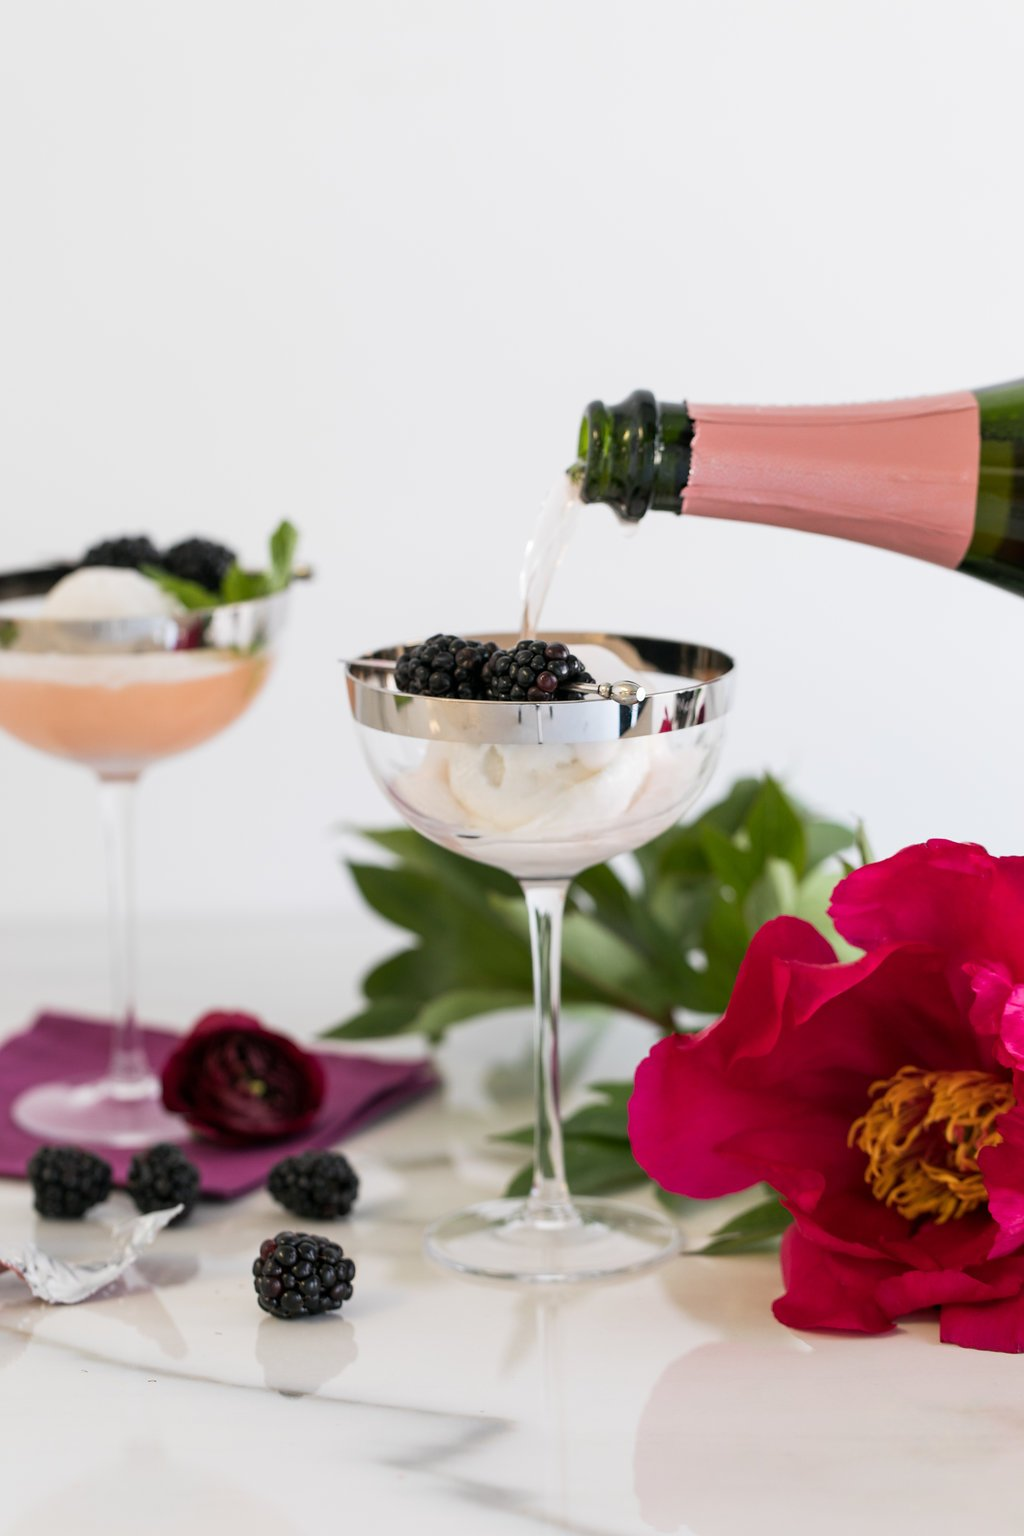 Pouring champagne into coupe glass with sorbet